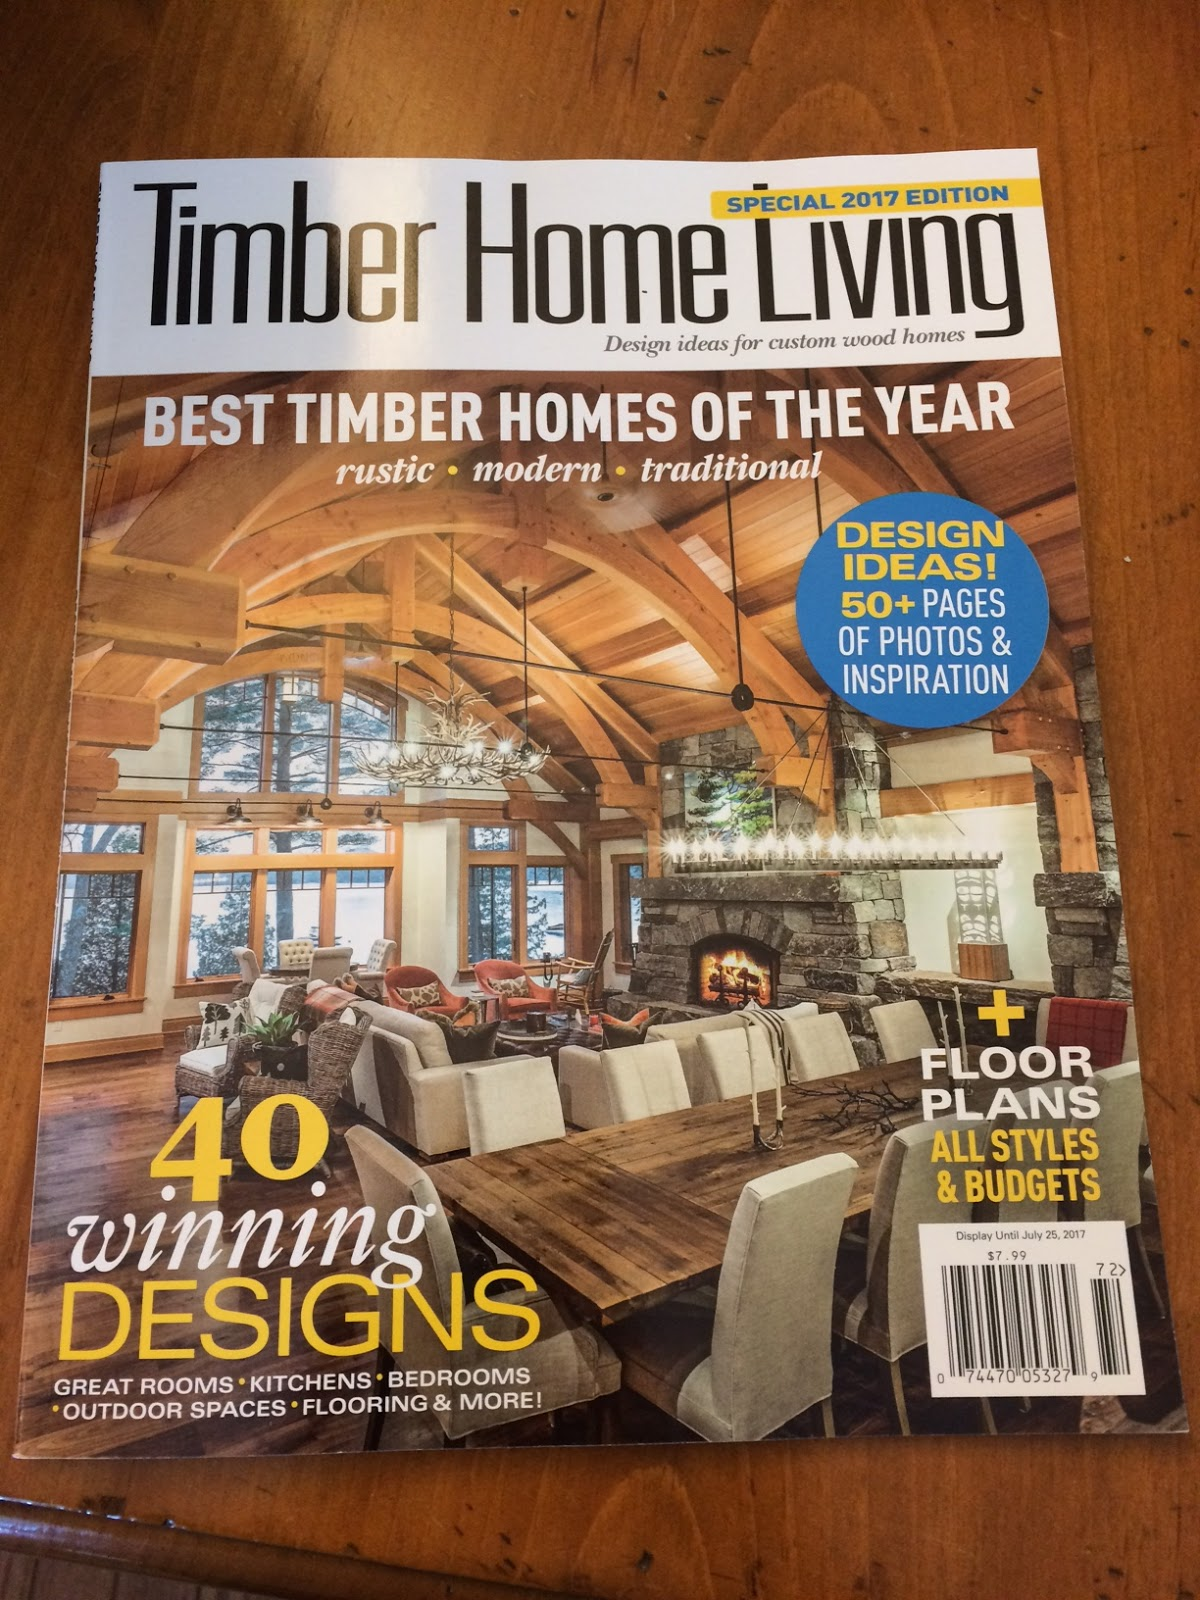 Look At Whose Stone Project Made The Cover Of Timber Home Living~ Nice Work  By Gary McKee And Morse Construction